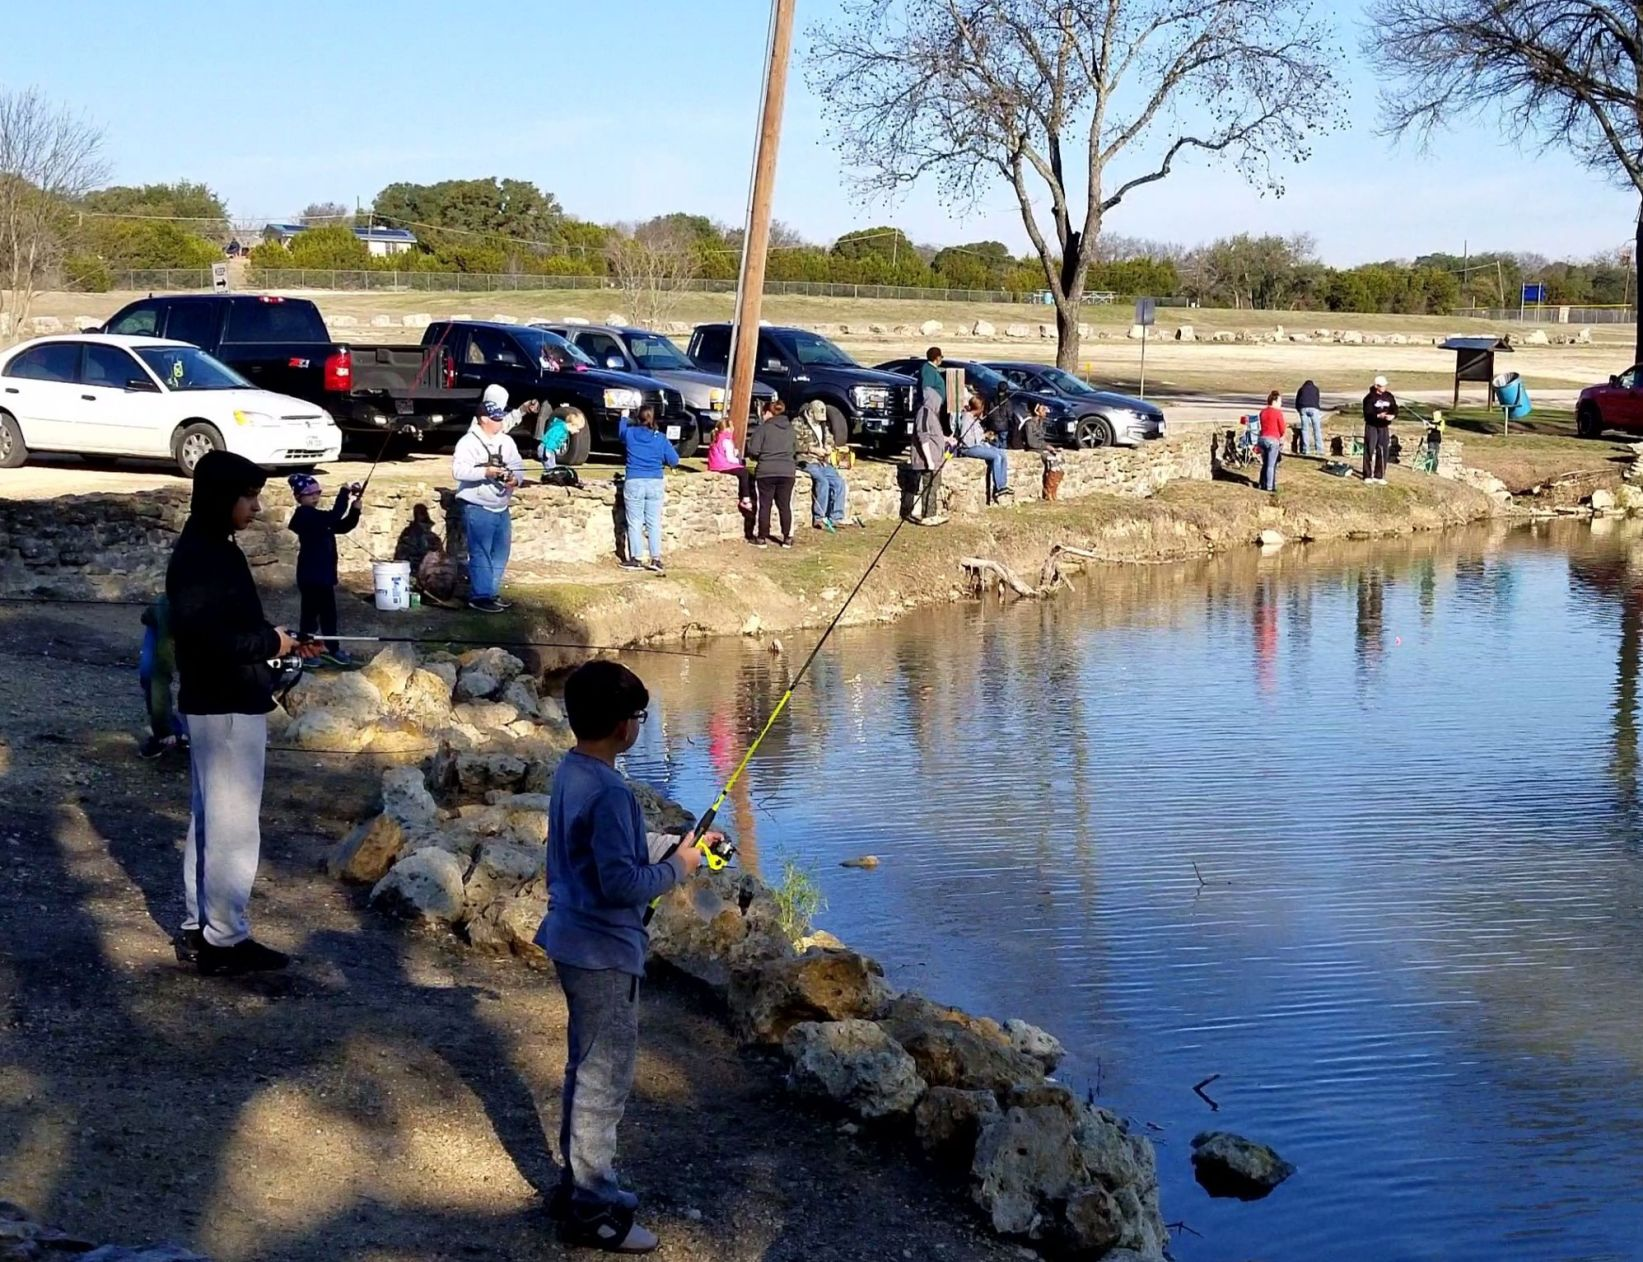 Copperas Cove Parks and Recreation Department to host free community fishing event next month